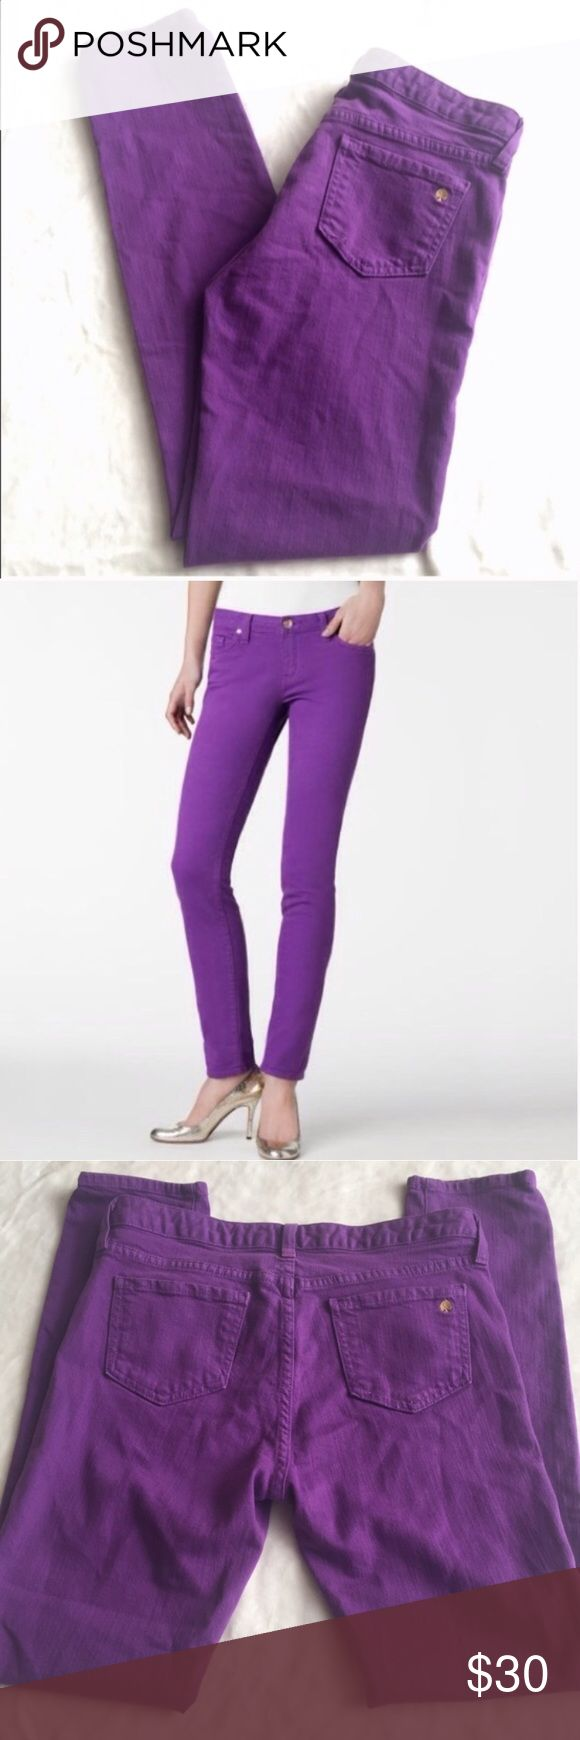 Kate Spade Broome Street Skinny Jeans Gorgeous purple (eggplant) skinny jeans by Kate Spade New York. Gold toned Kate Spade logo stitched on back pocket and in detail of all buttons. Size 29. In excellent condition with no flaws. ❌Trades/holds❌ I ship within 2 business days of your order. I accept REASONABLE offers. Poshmark rules only. Thank you for 👀! 🐩🚭B5 kate spade Jeans Skinny